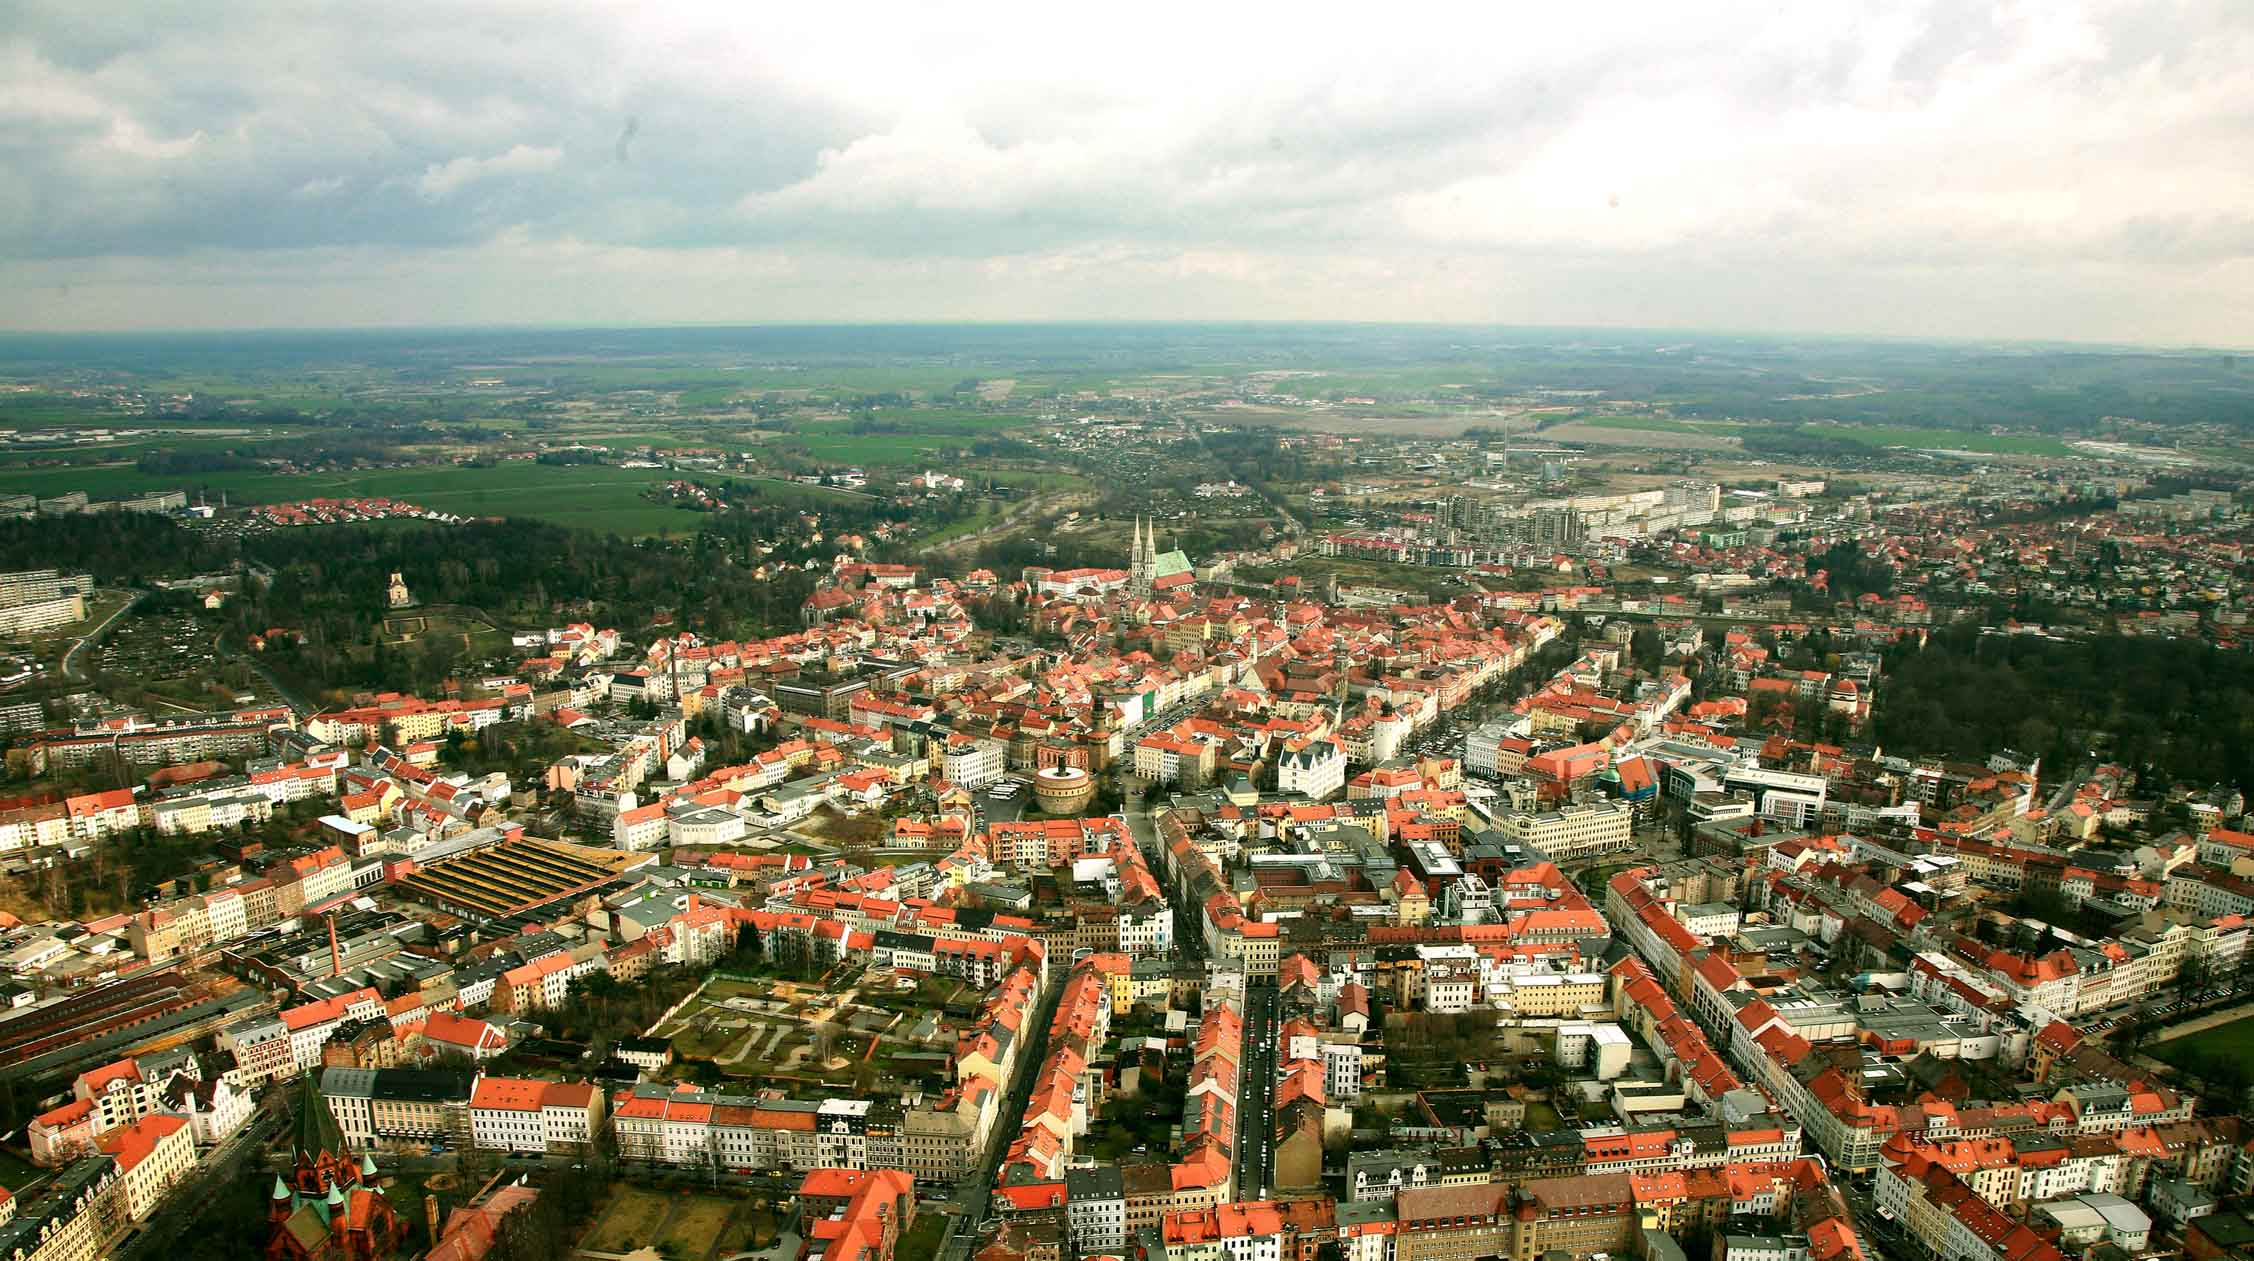 An aerial view of the beautiful, historical town of Görlitz, Germany. Image via  Google .